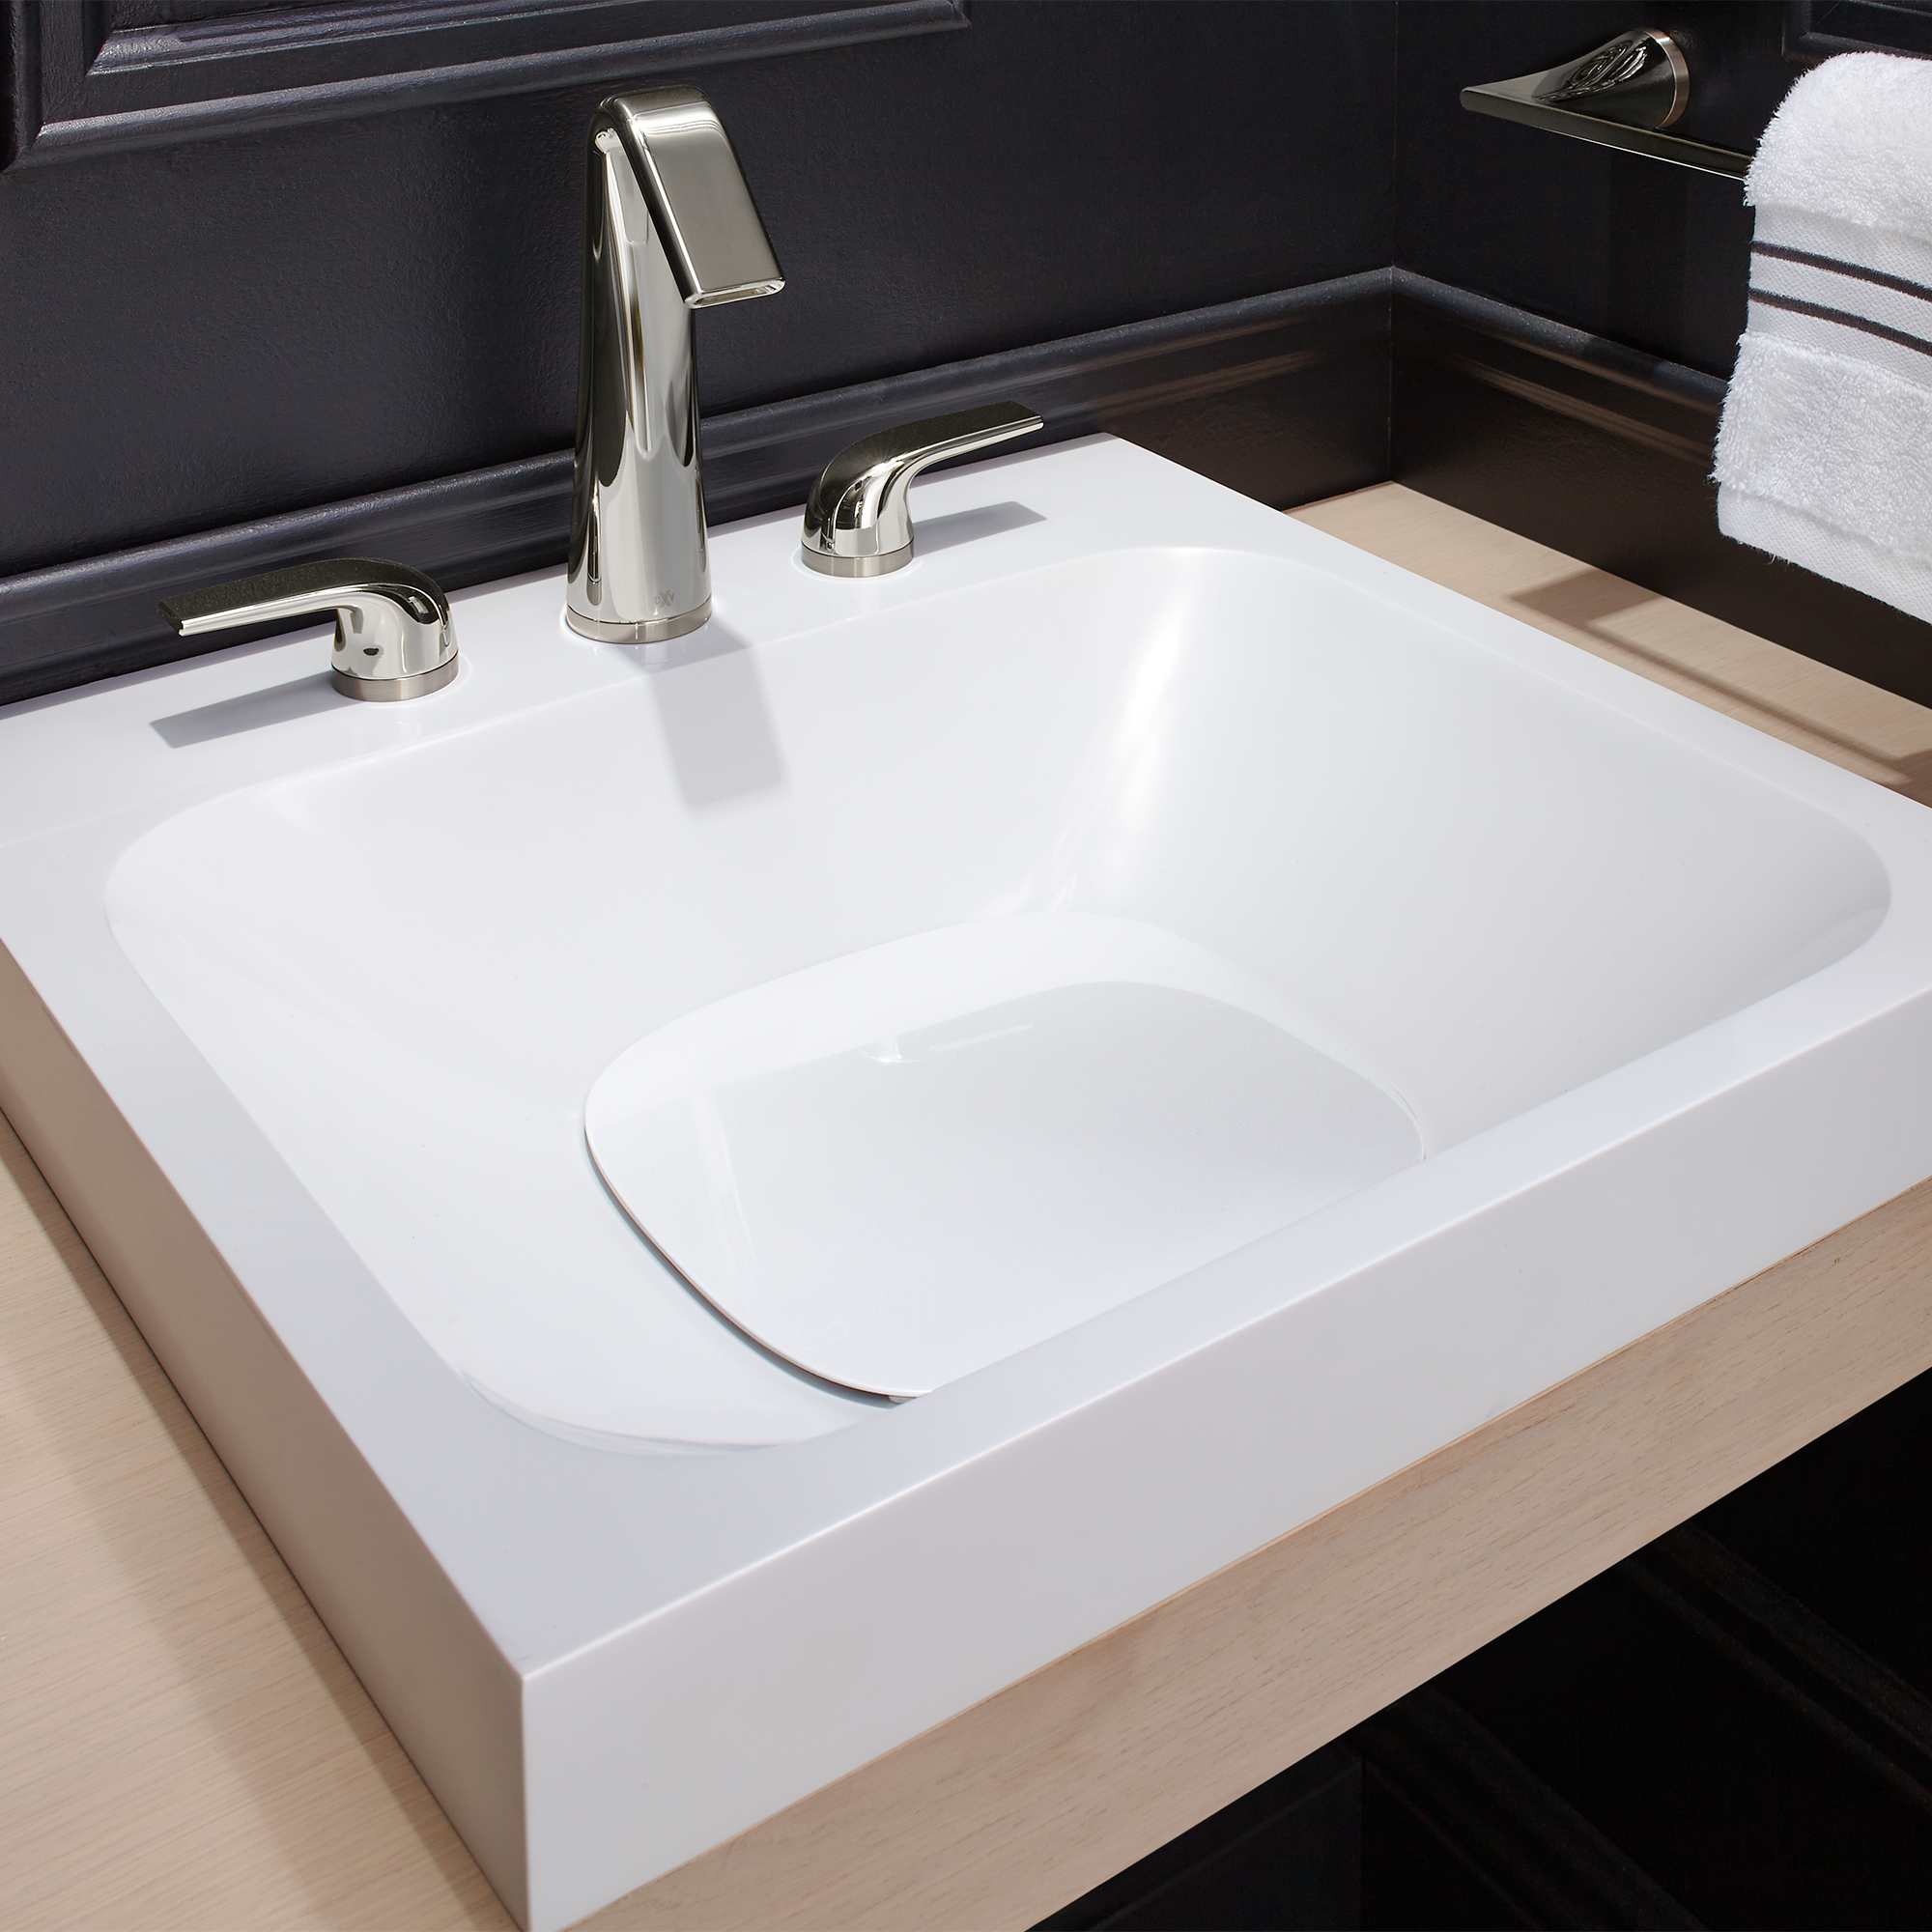 21 inch bathroom vanity sink dxv modulus 21 inch bathroom sink 21778